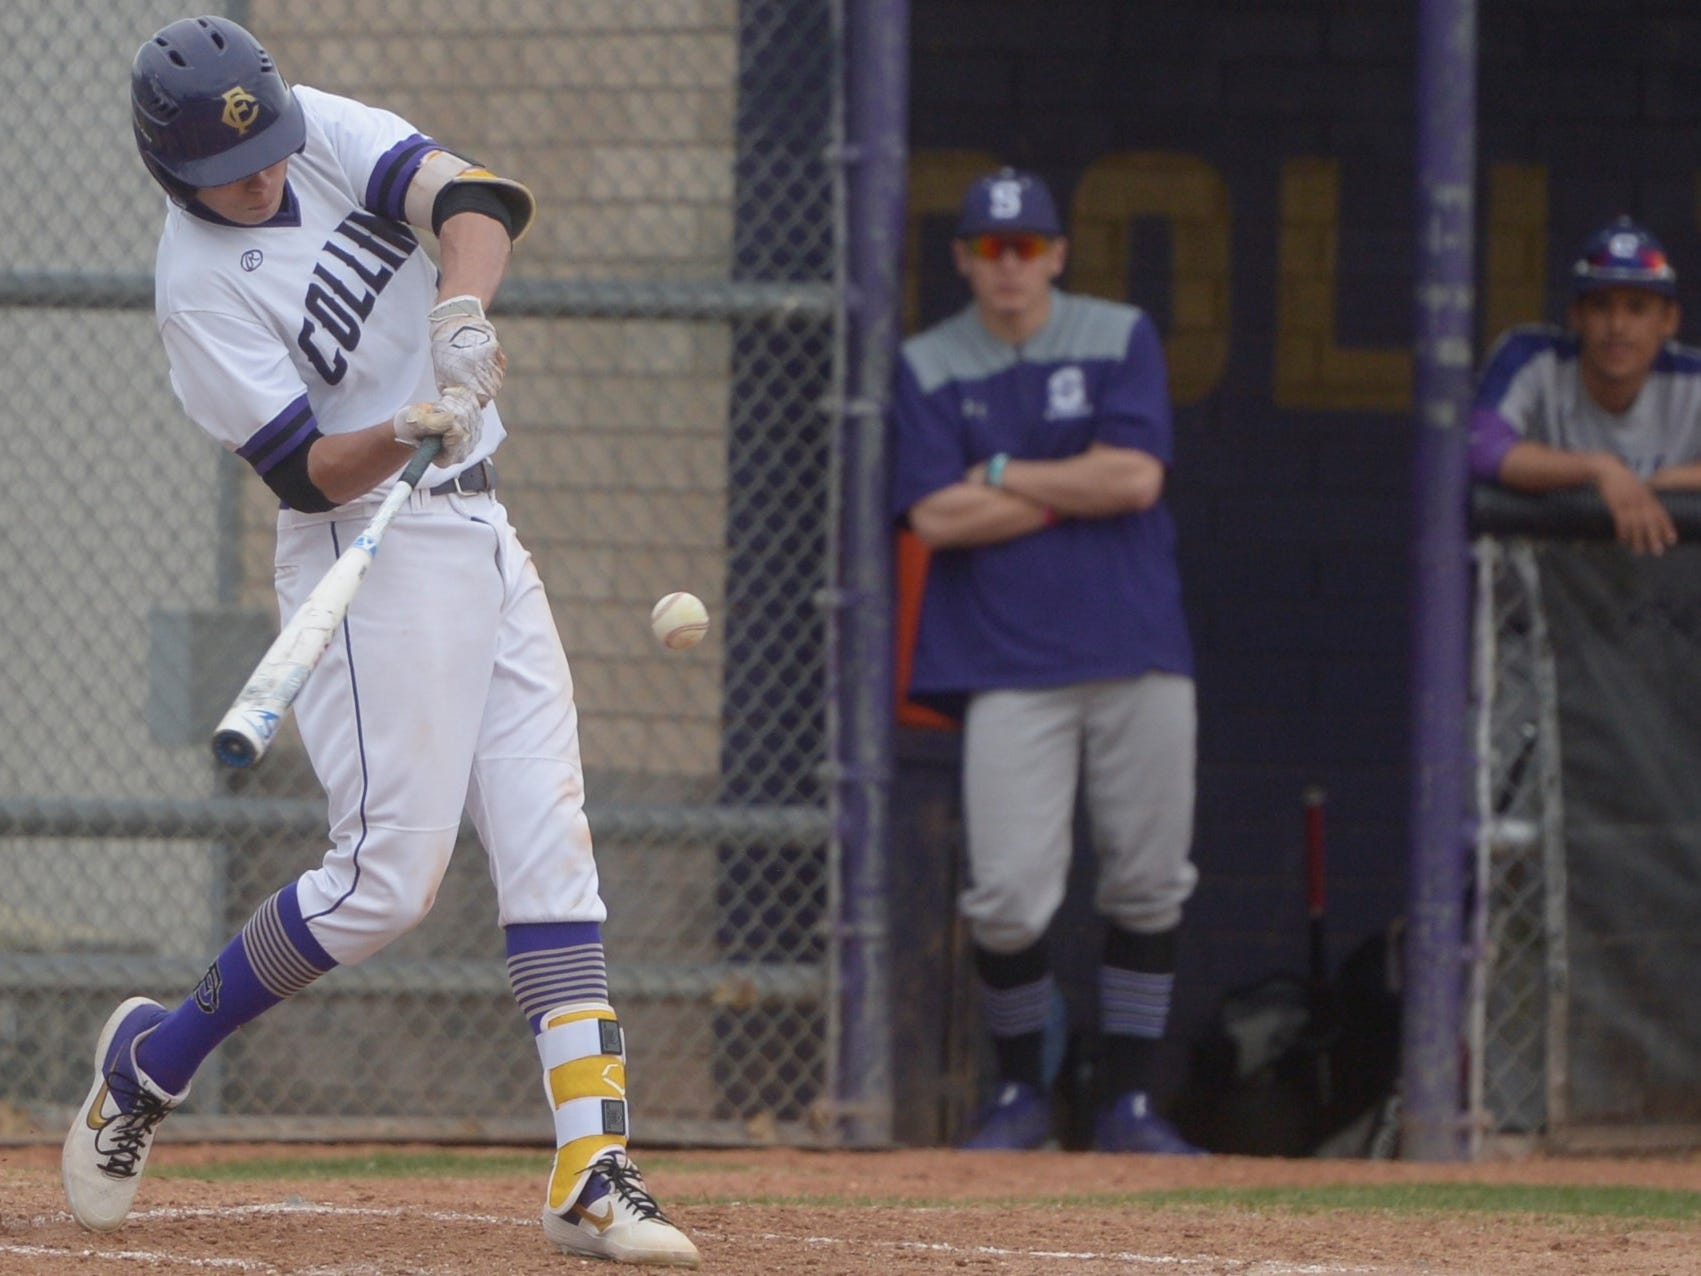 Fort Collins High School baseball center fielder Colby Shade hits a triple during a game against Denver South on Monday, April 8, 2019. The Lambkins won 13-3 to move to 10-0 on the season.